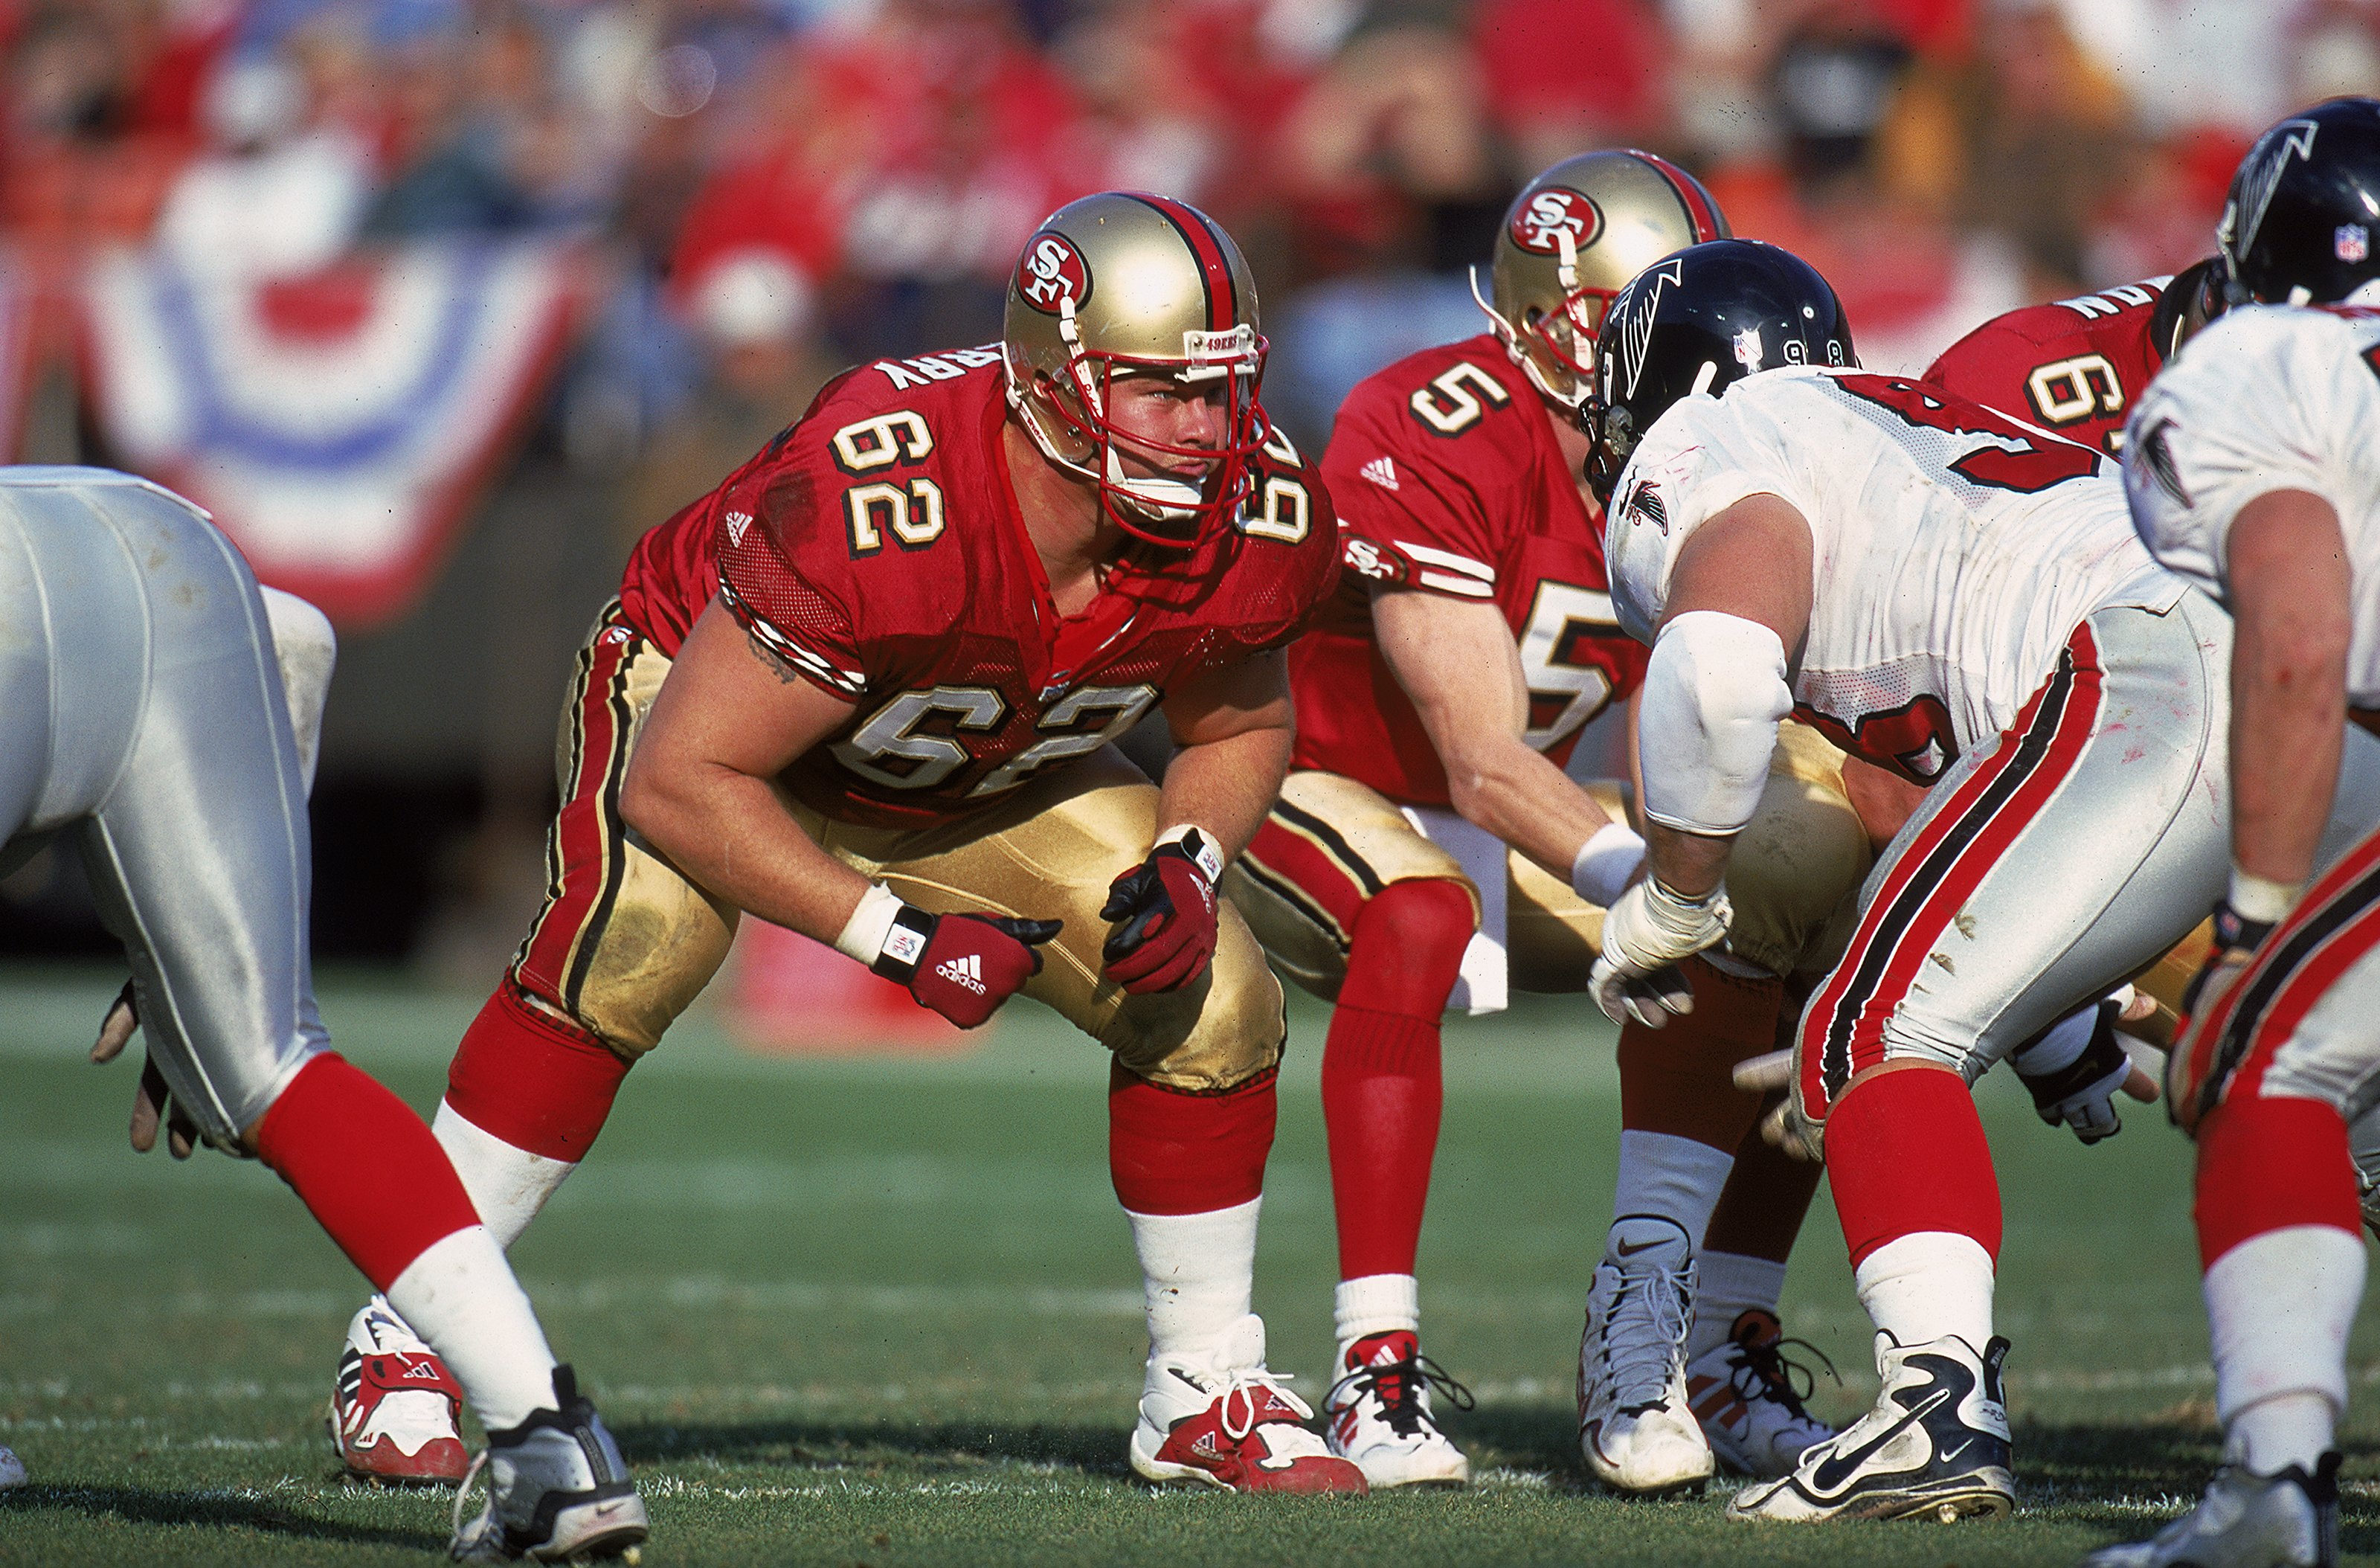 San Francisco 49ers offensive lineman Jeremy Newberry, No. 62, in a 1999 NFL game. Newberry is one of the plaintiffs in a class-action lawsuit alleging NFL teams misuse powerful painkillers to keep injured players on the field. (Tom Hauck/Allsport-Getty Images)